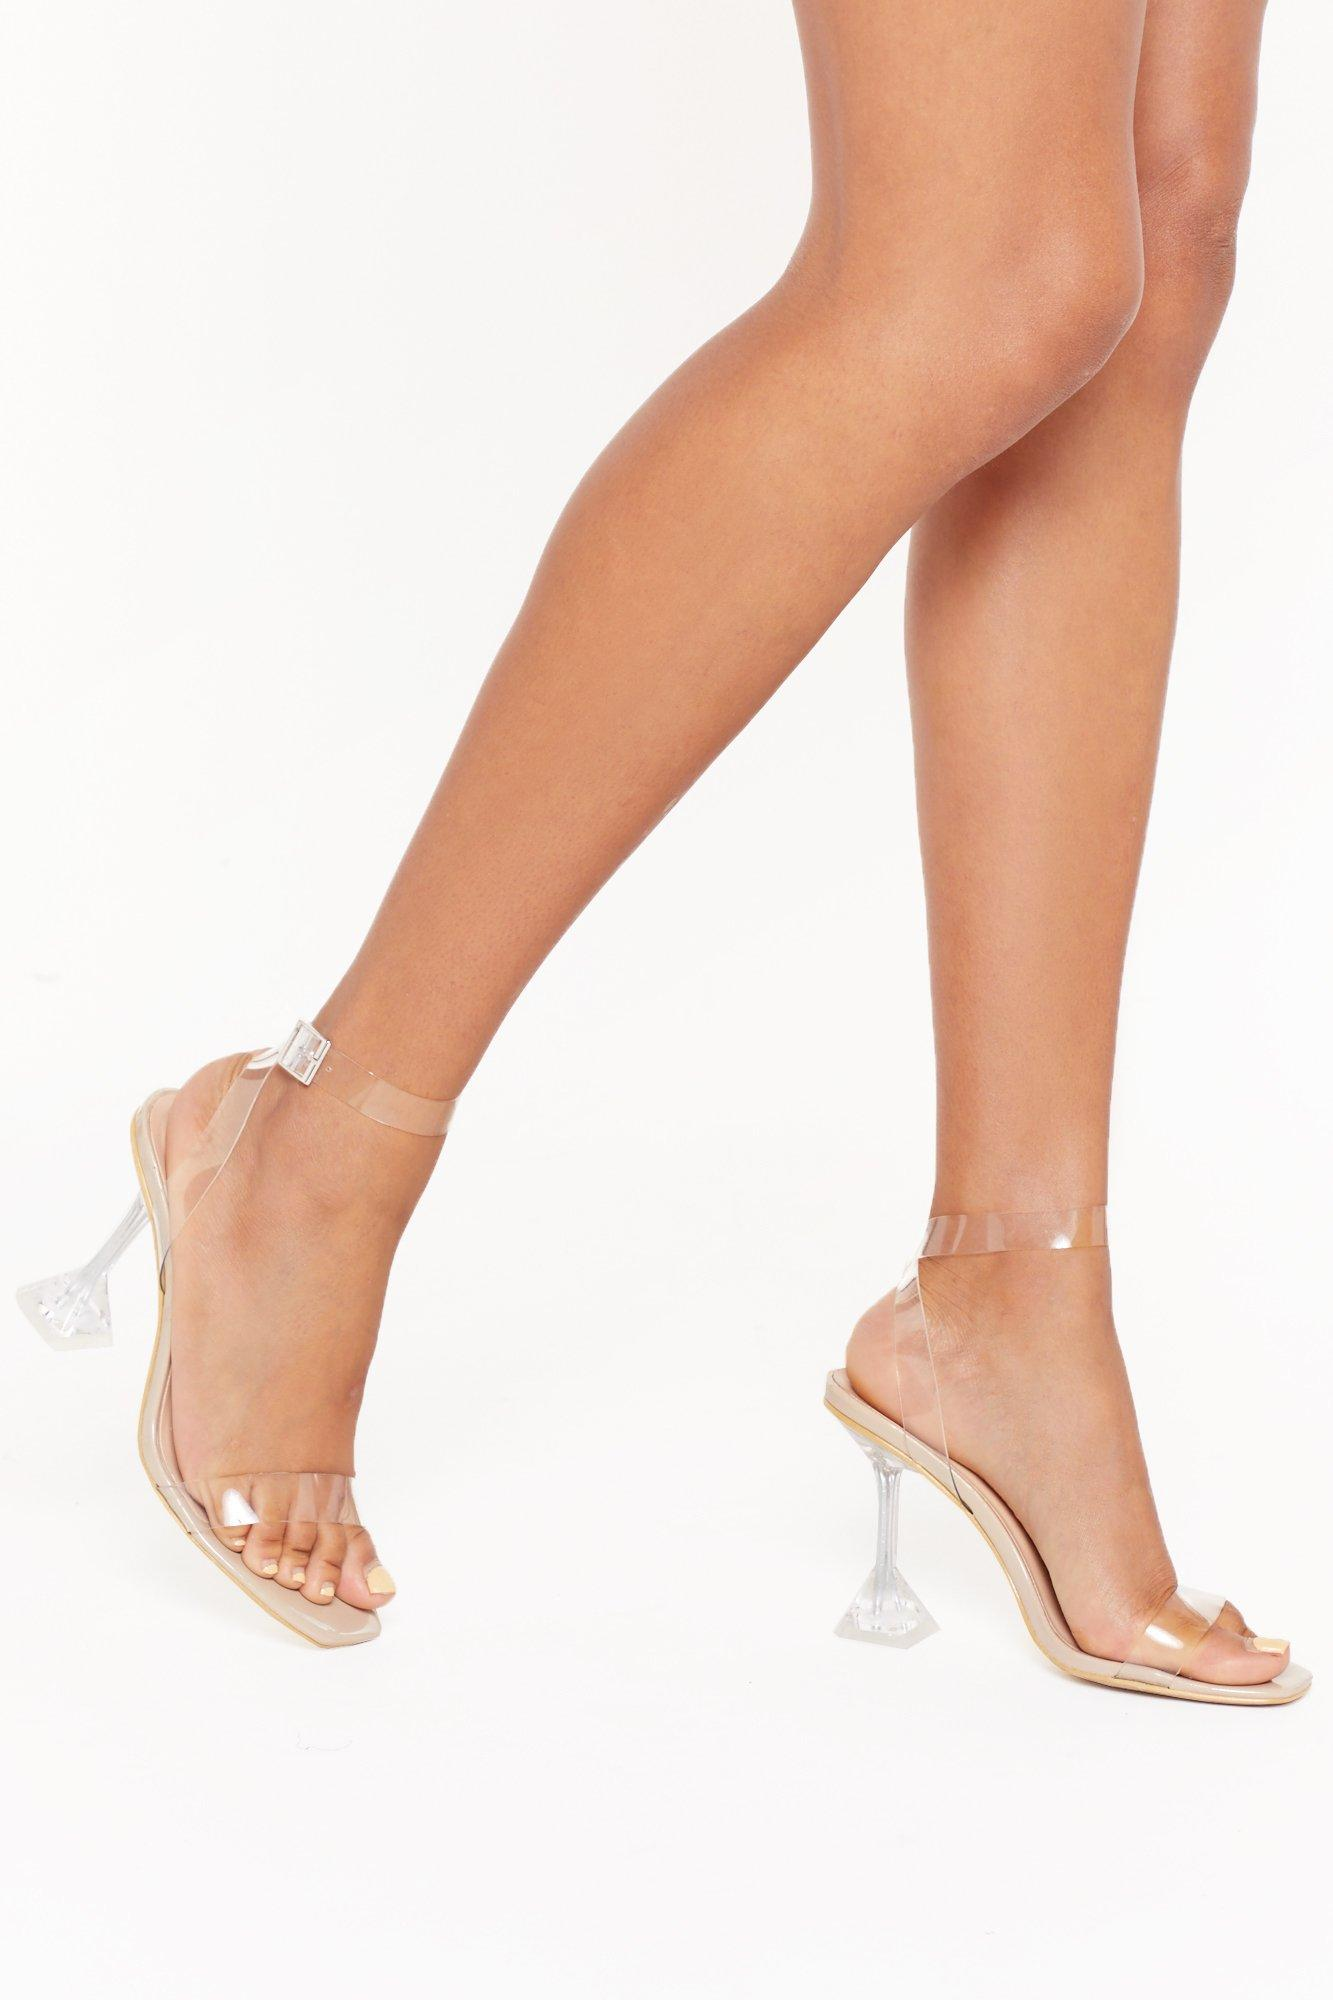 Image of It's All So Clear Now Stiletto Heels